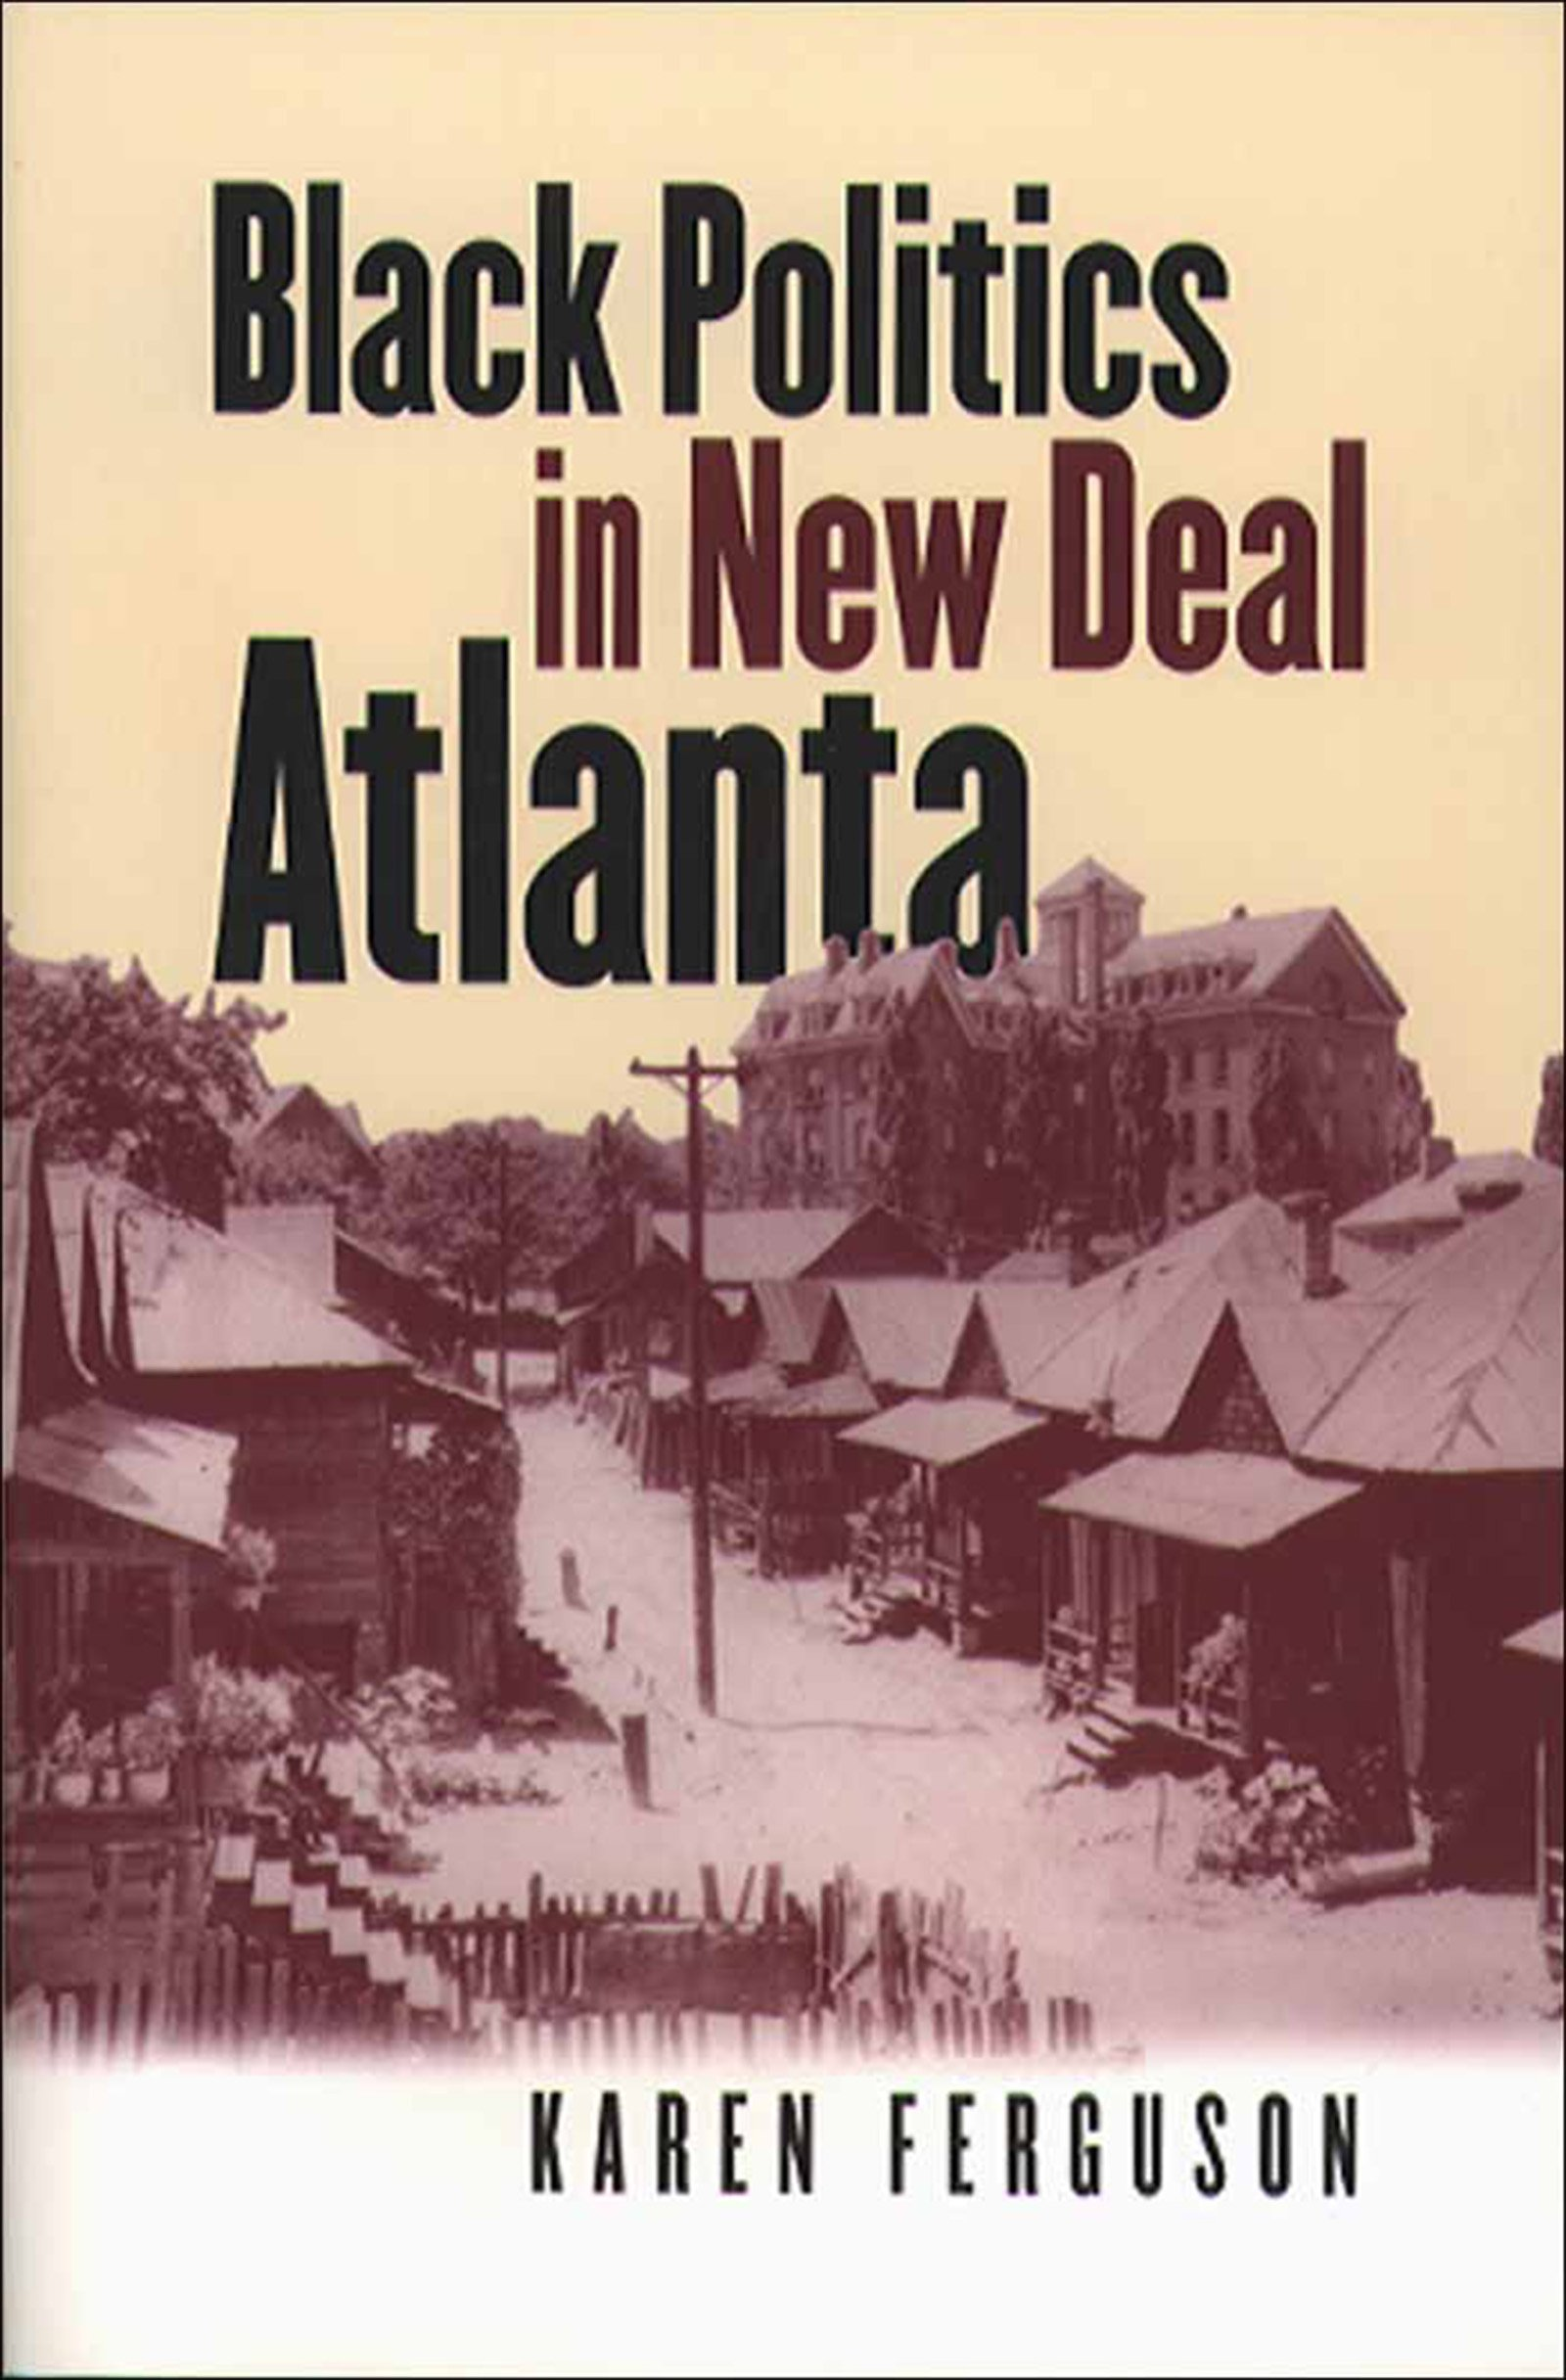 Learn more about Atlanta history with Karen Ferguson's Black Politics in New Deal Atlanta-click the link below for more information